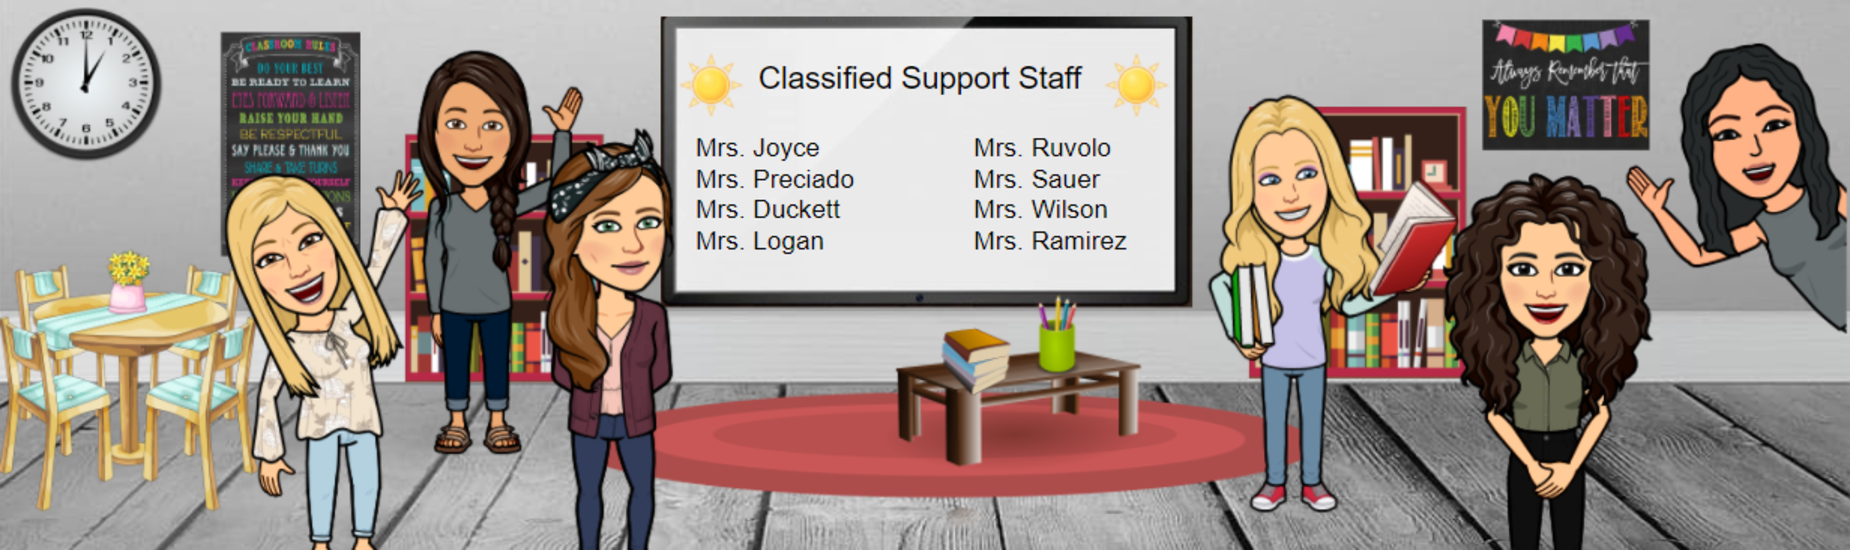 Classified Support Staff